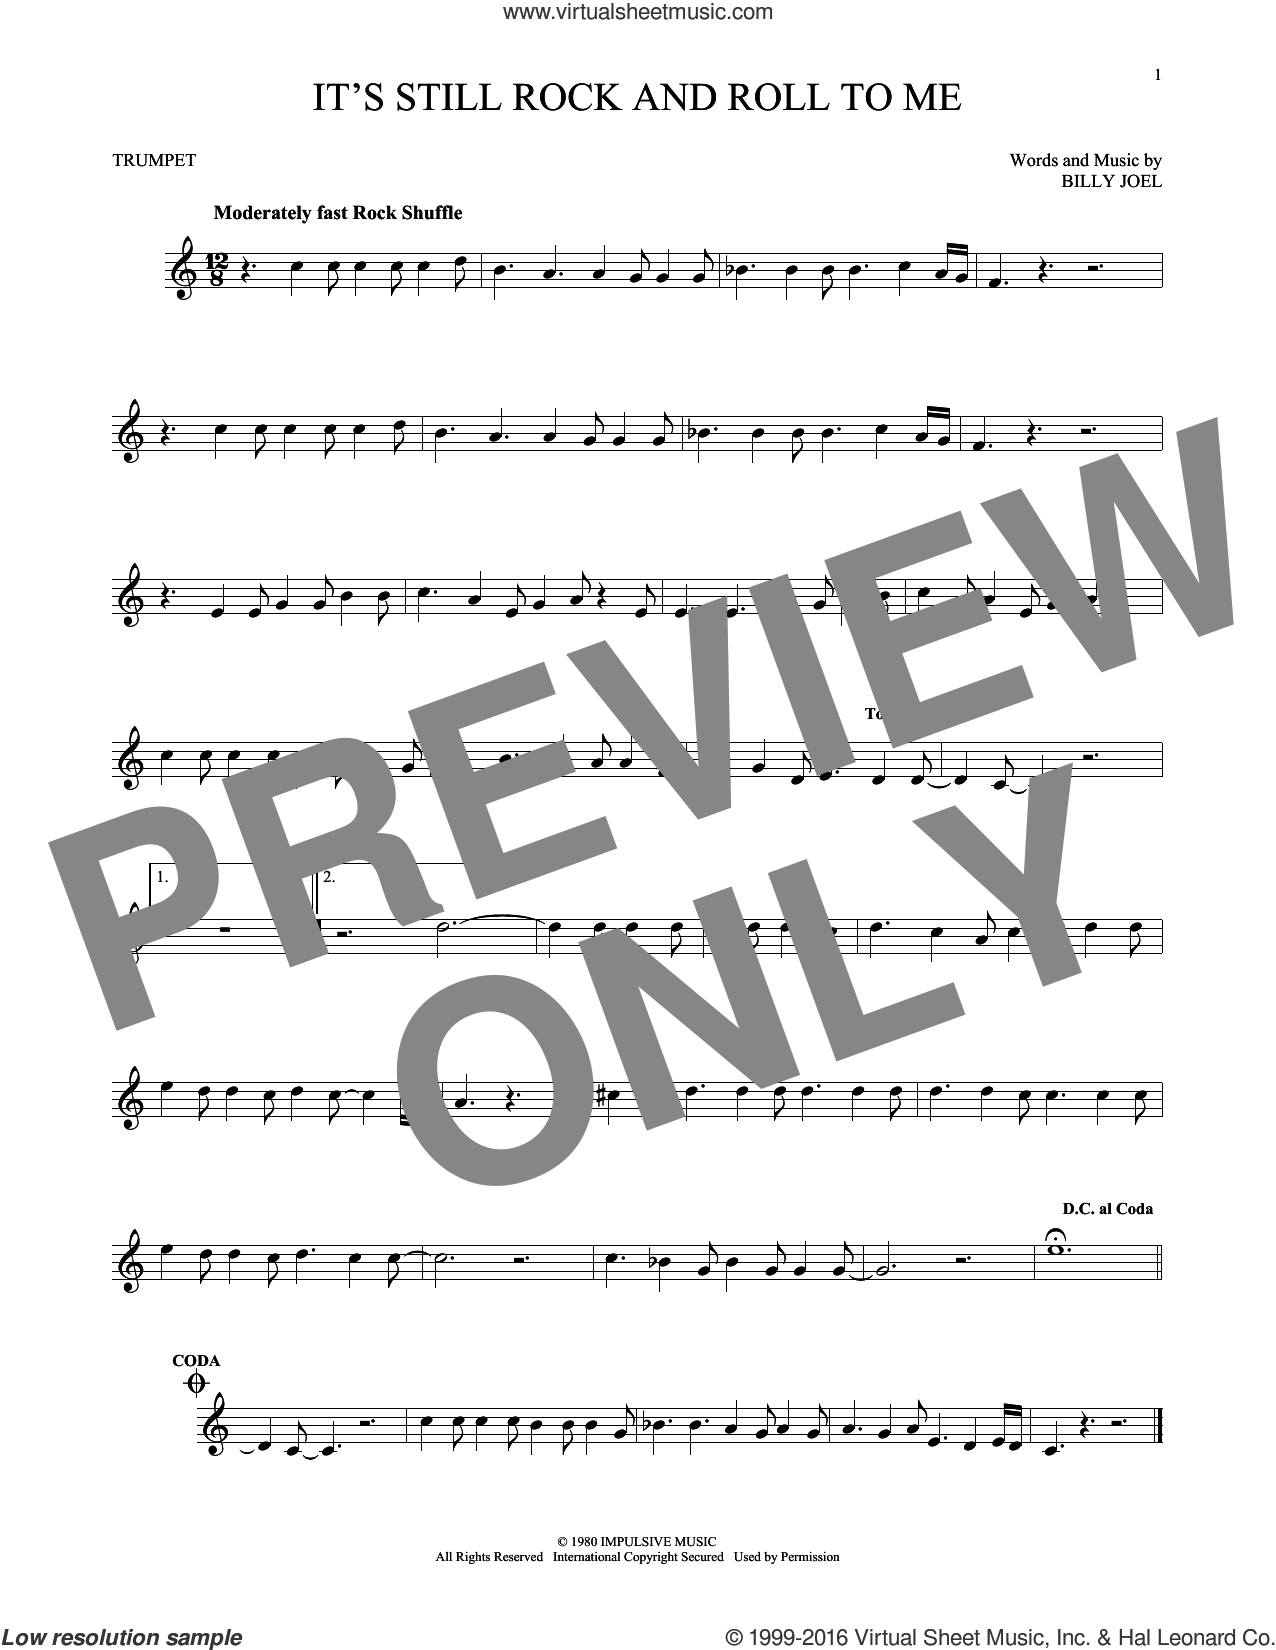 It's Still Rock And Roll To Me sheet music for trumpet solo by Billy Joel